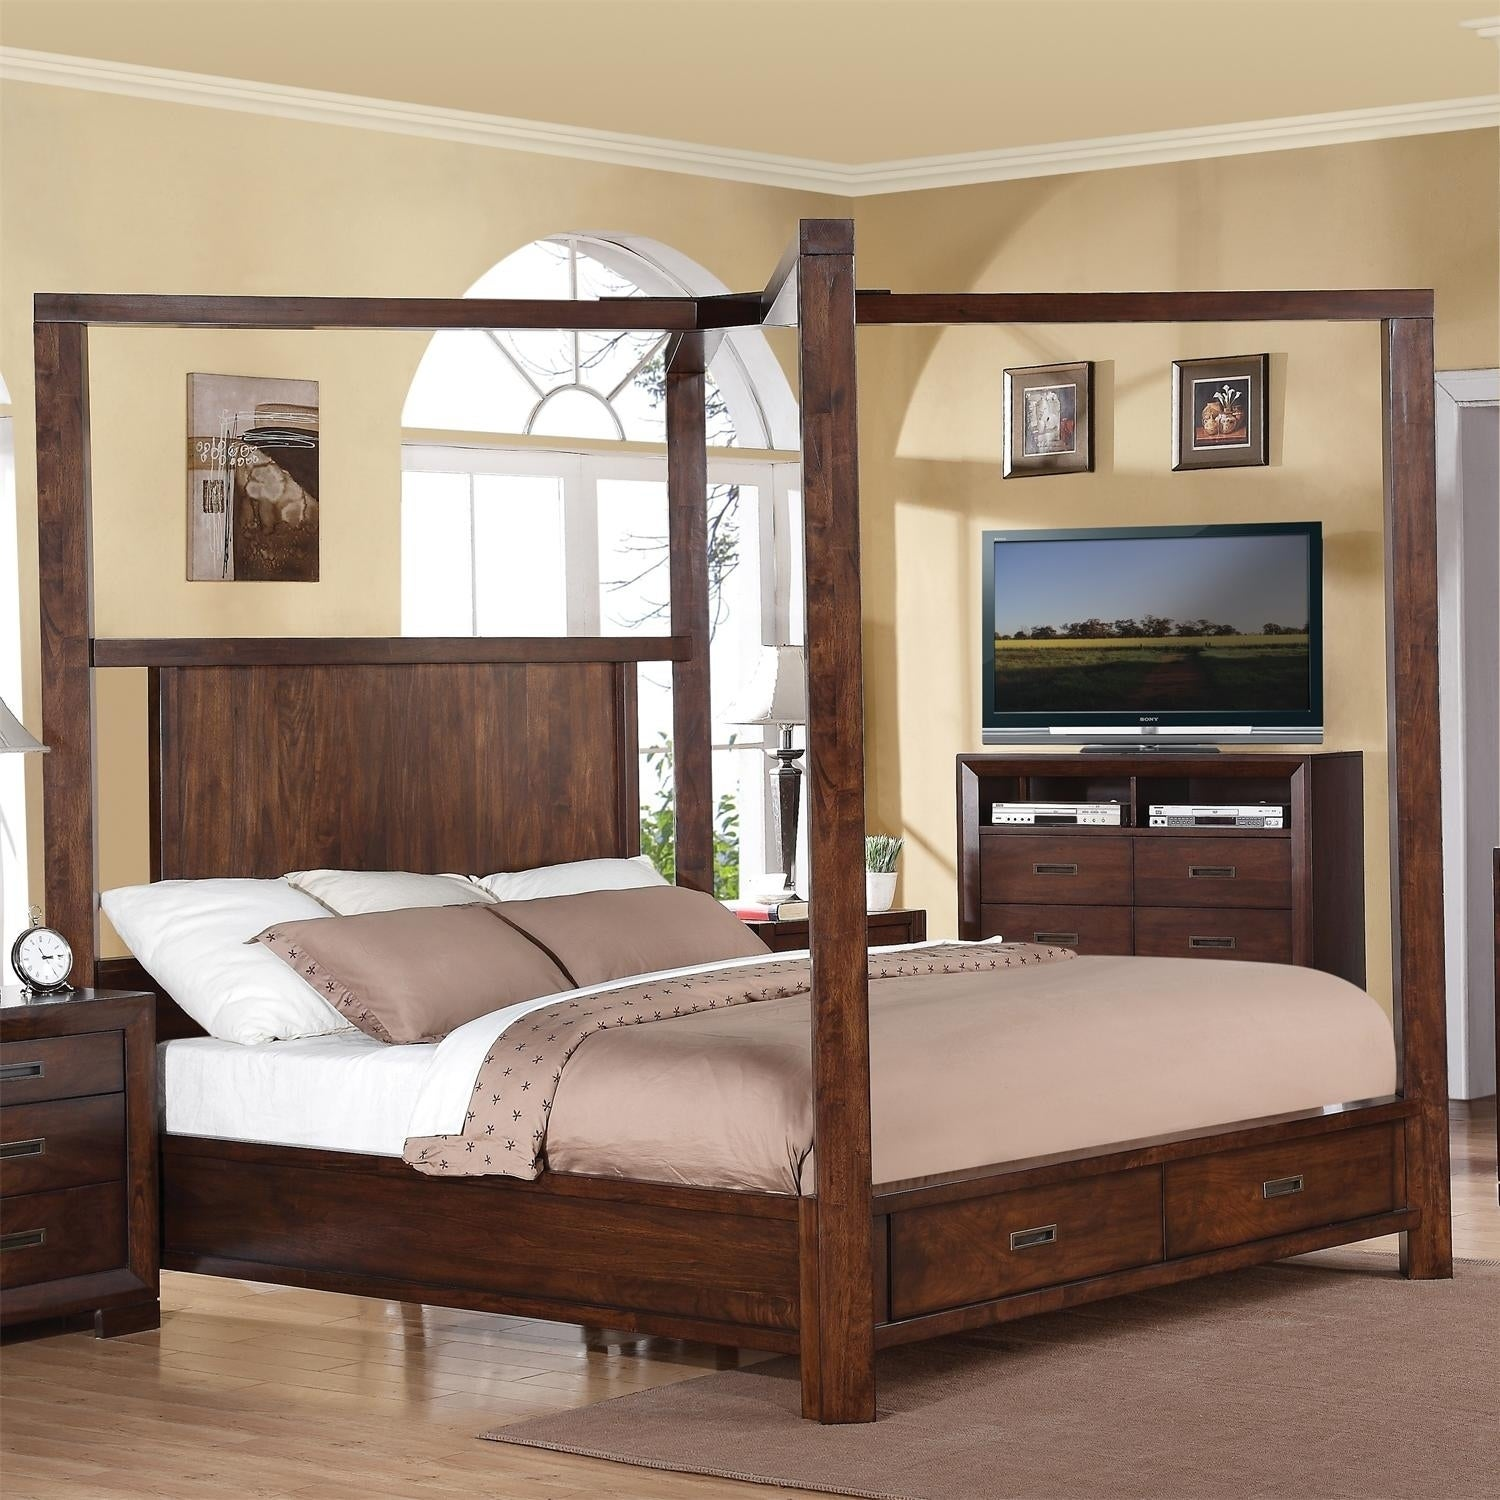 Image of: Shop Black Friday Deals On Riata Canopy Storage Bed Overstock 22174699